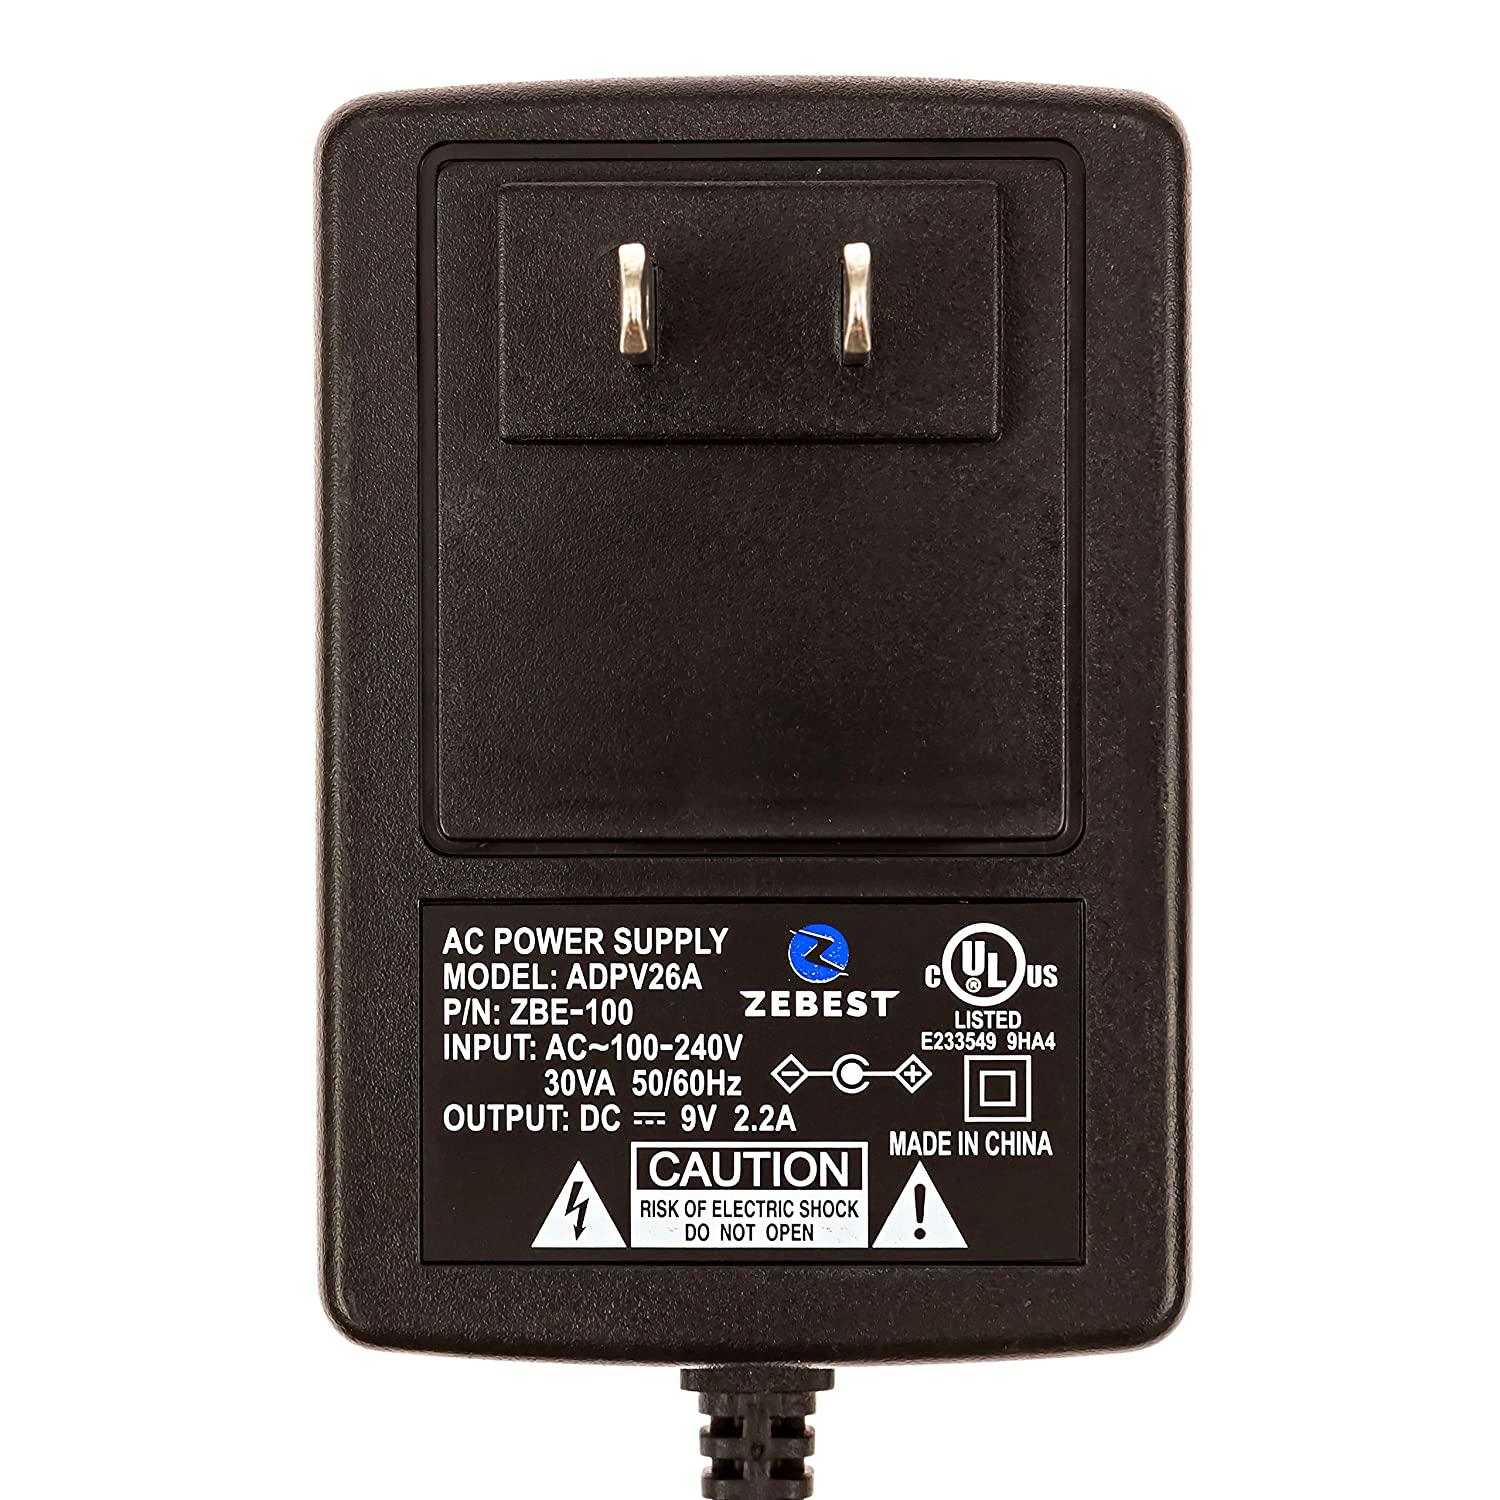 Amazon.in: Buy AC power adapter charger for LG DP771 DP781 DP885 DP889  DVP7722 DVP7772 Liquid Video ZIDM-830 ZIDM830 MACVISION M510 Online at Low  Prices in ...